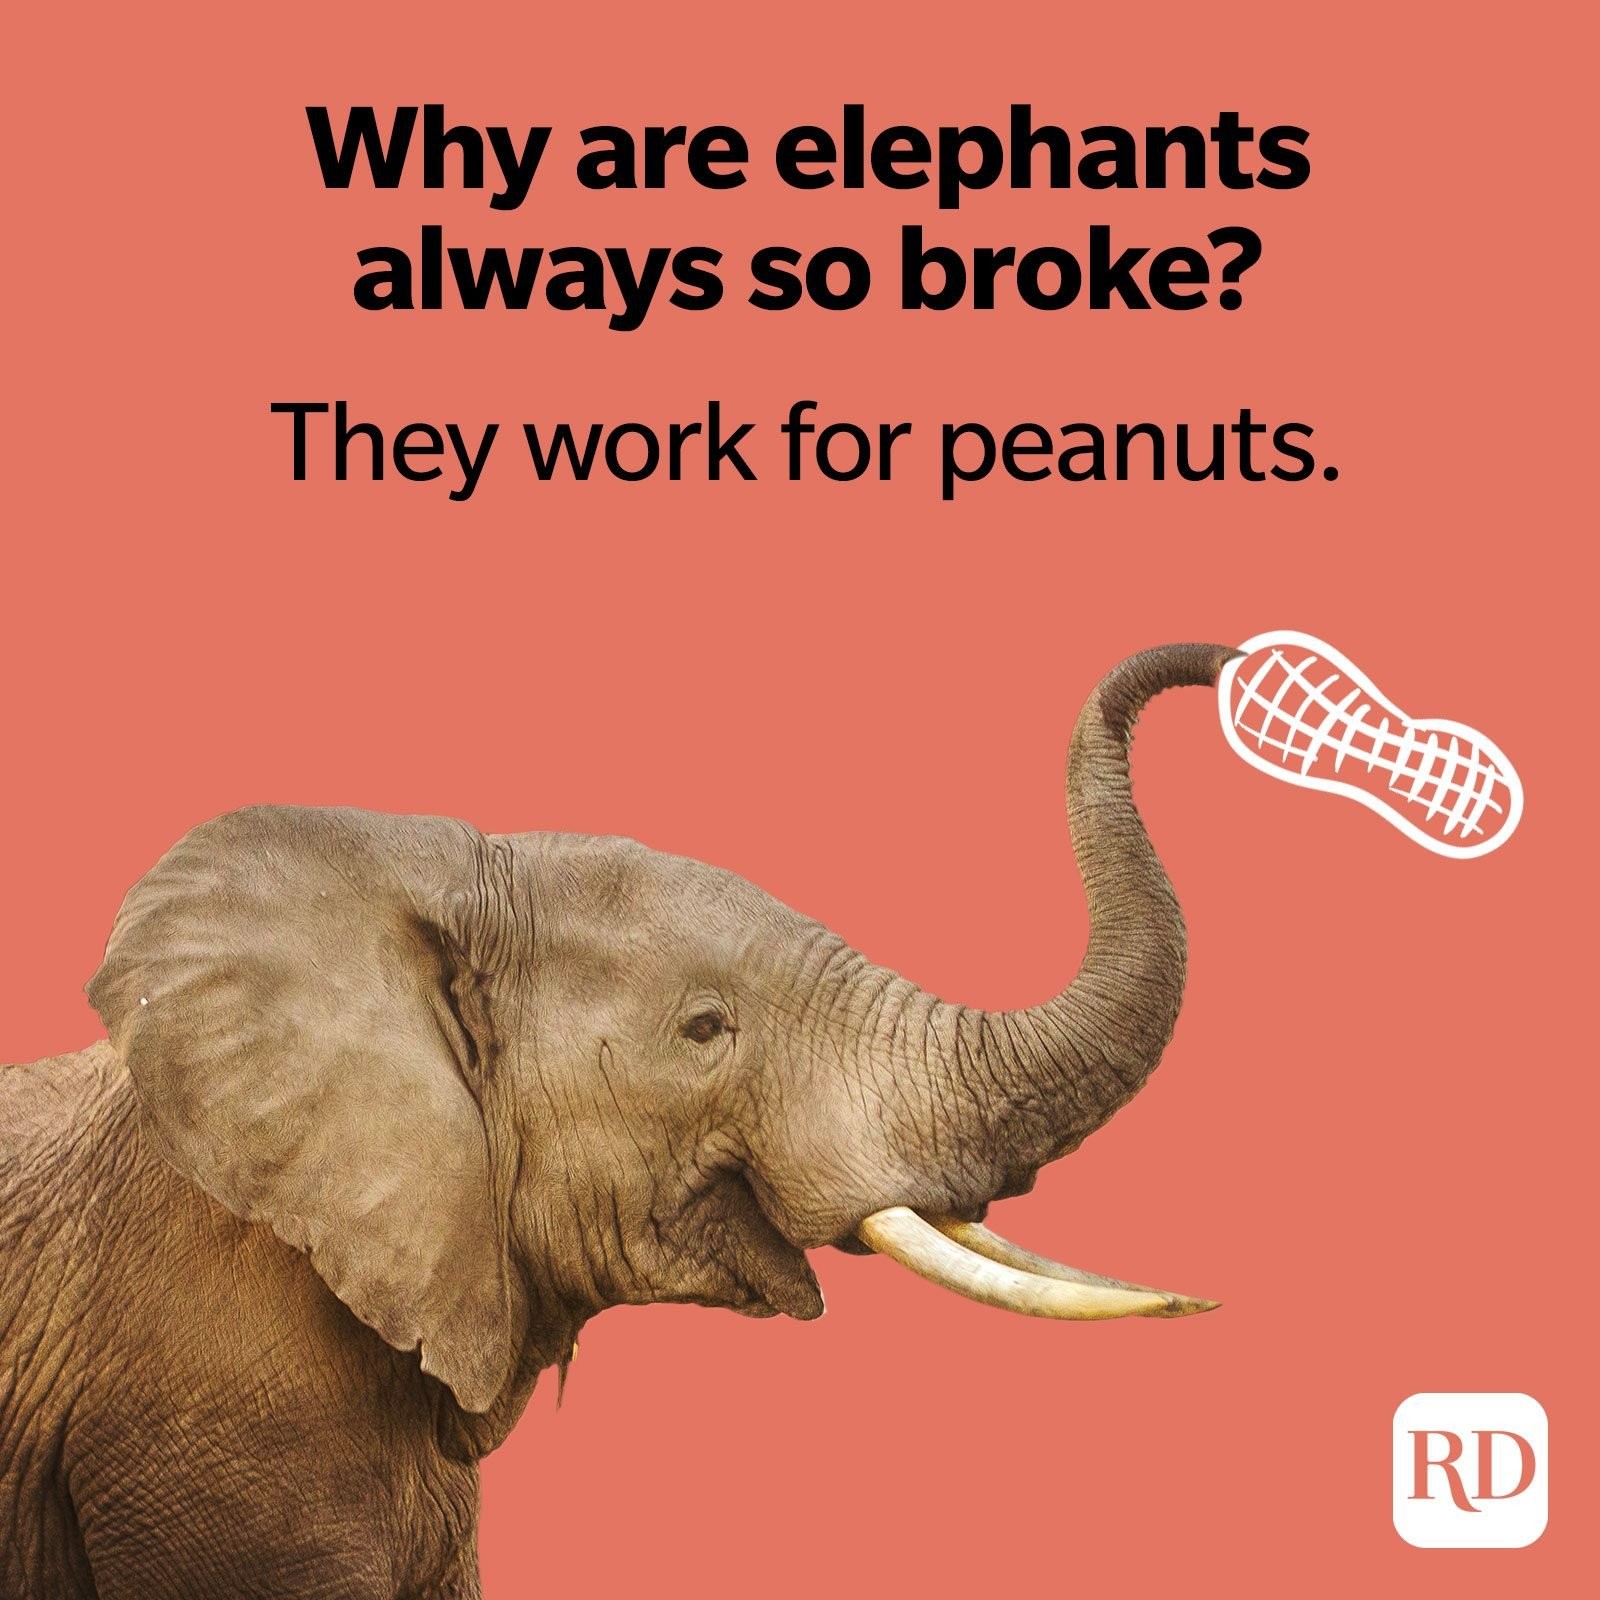 Why are elephants always so broke? They work for peanuts.